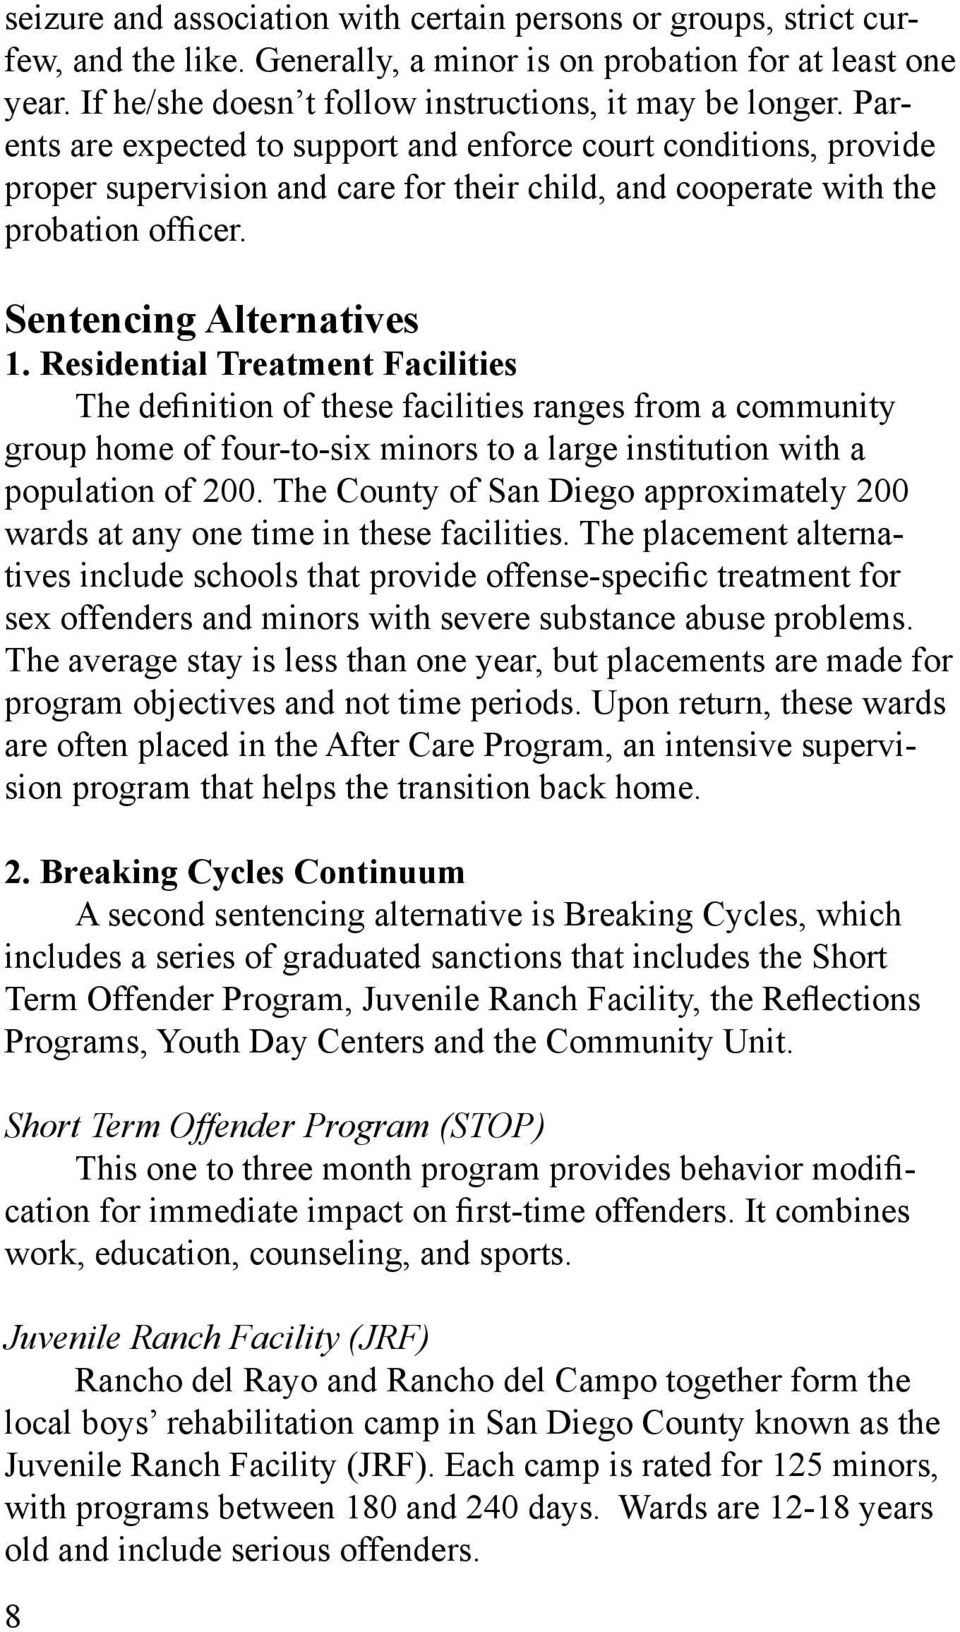 Residential Treatment Facilities The definition of these facilities ranges from a community group home of four-to-six minors to a large institution with a population of 200.